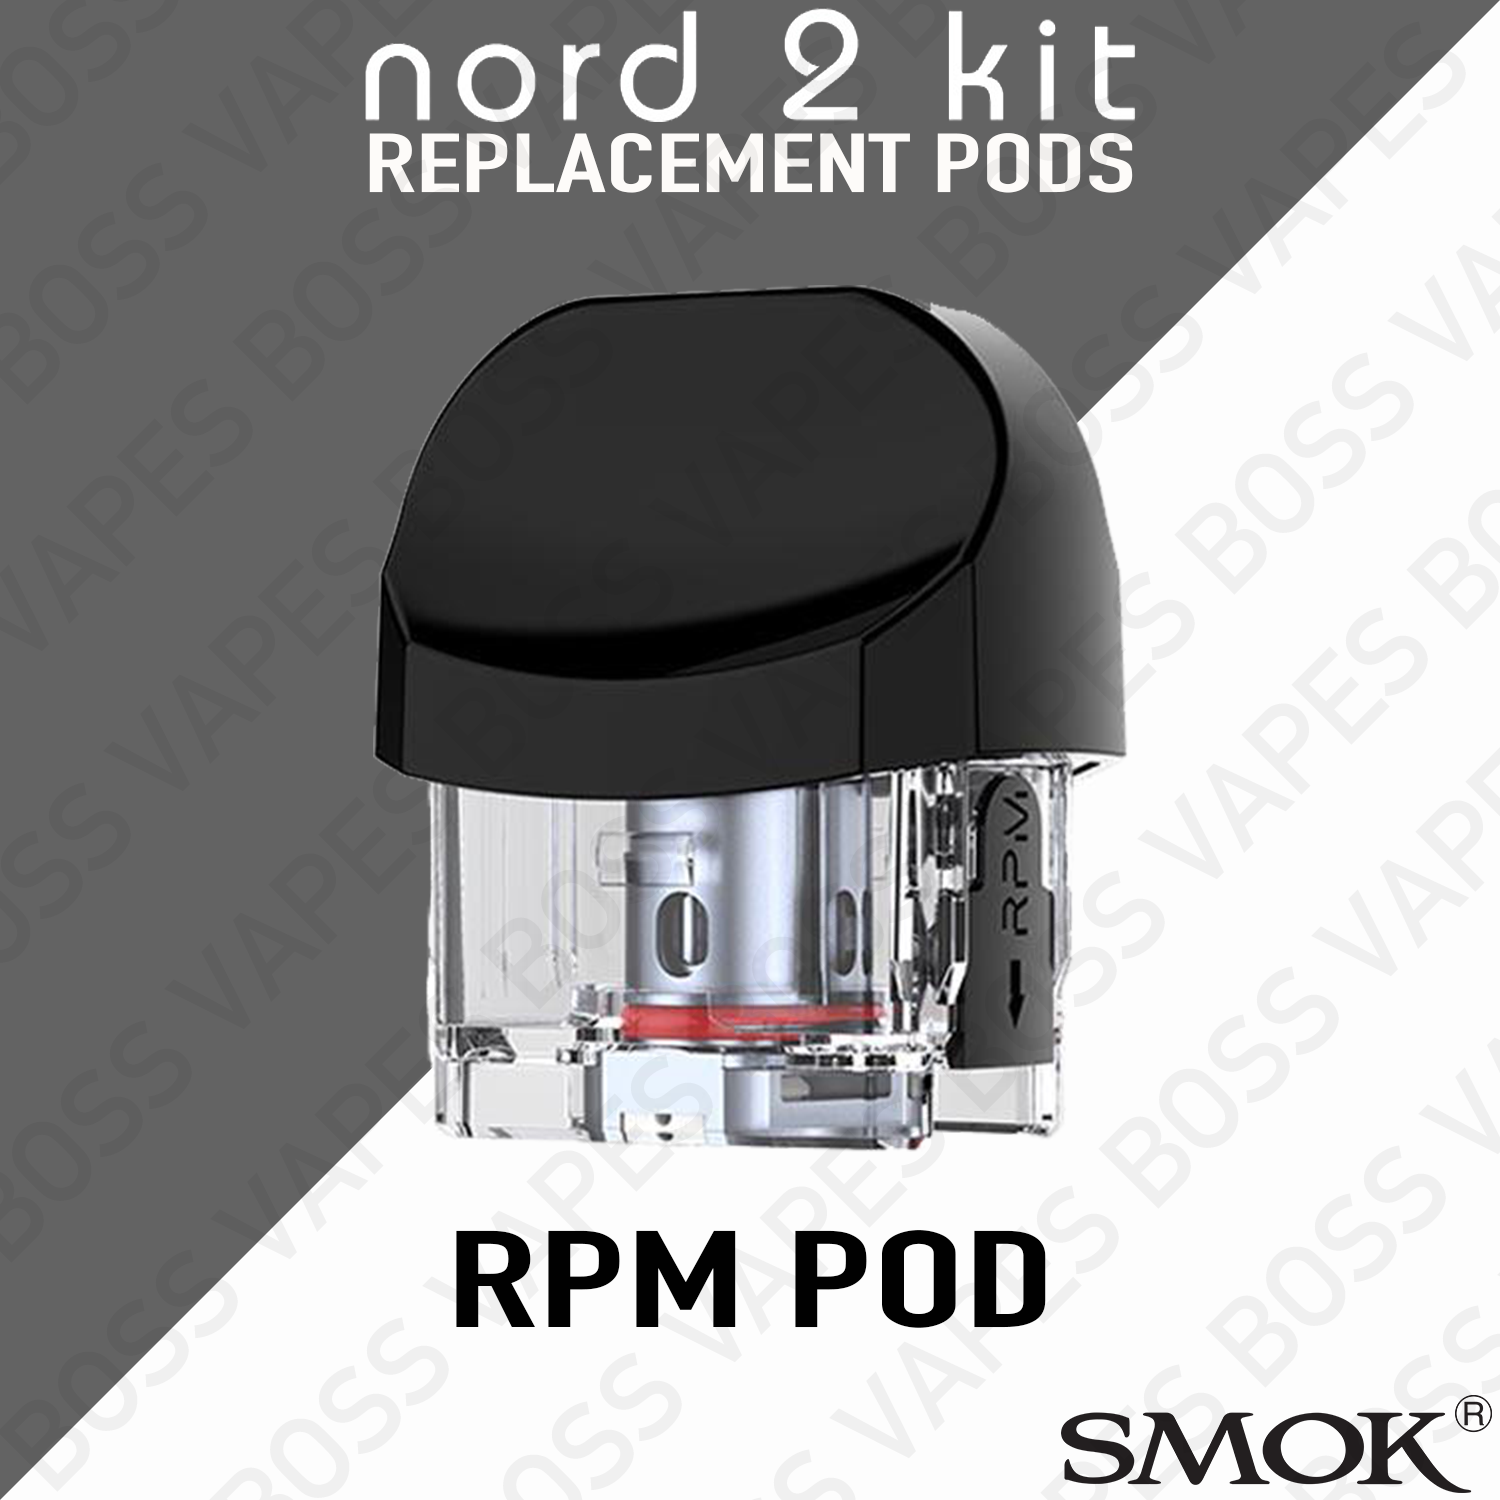 SMOK NORD 2 EMPTY POD (Pods Priced Individually) - Boss Vapes